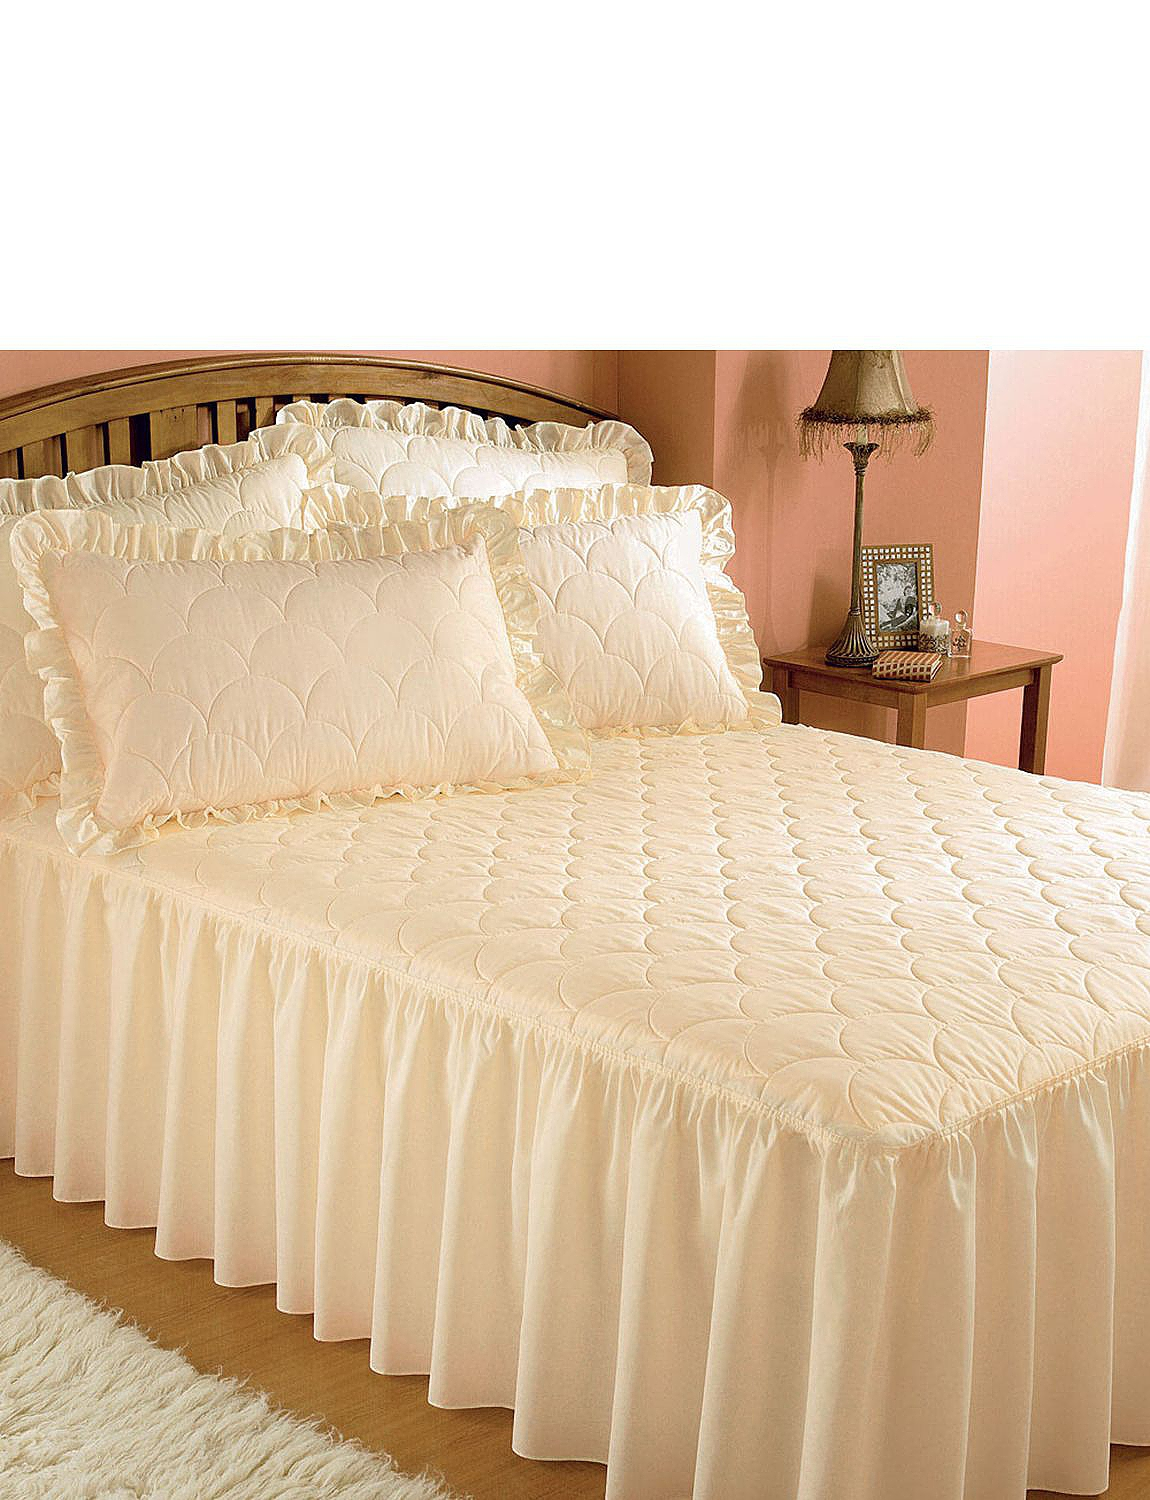 Luxury Plain Quilted Bedspread - Home Bedroom